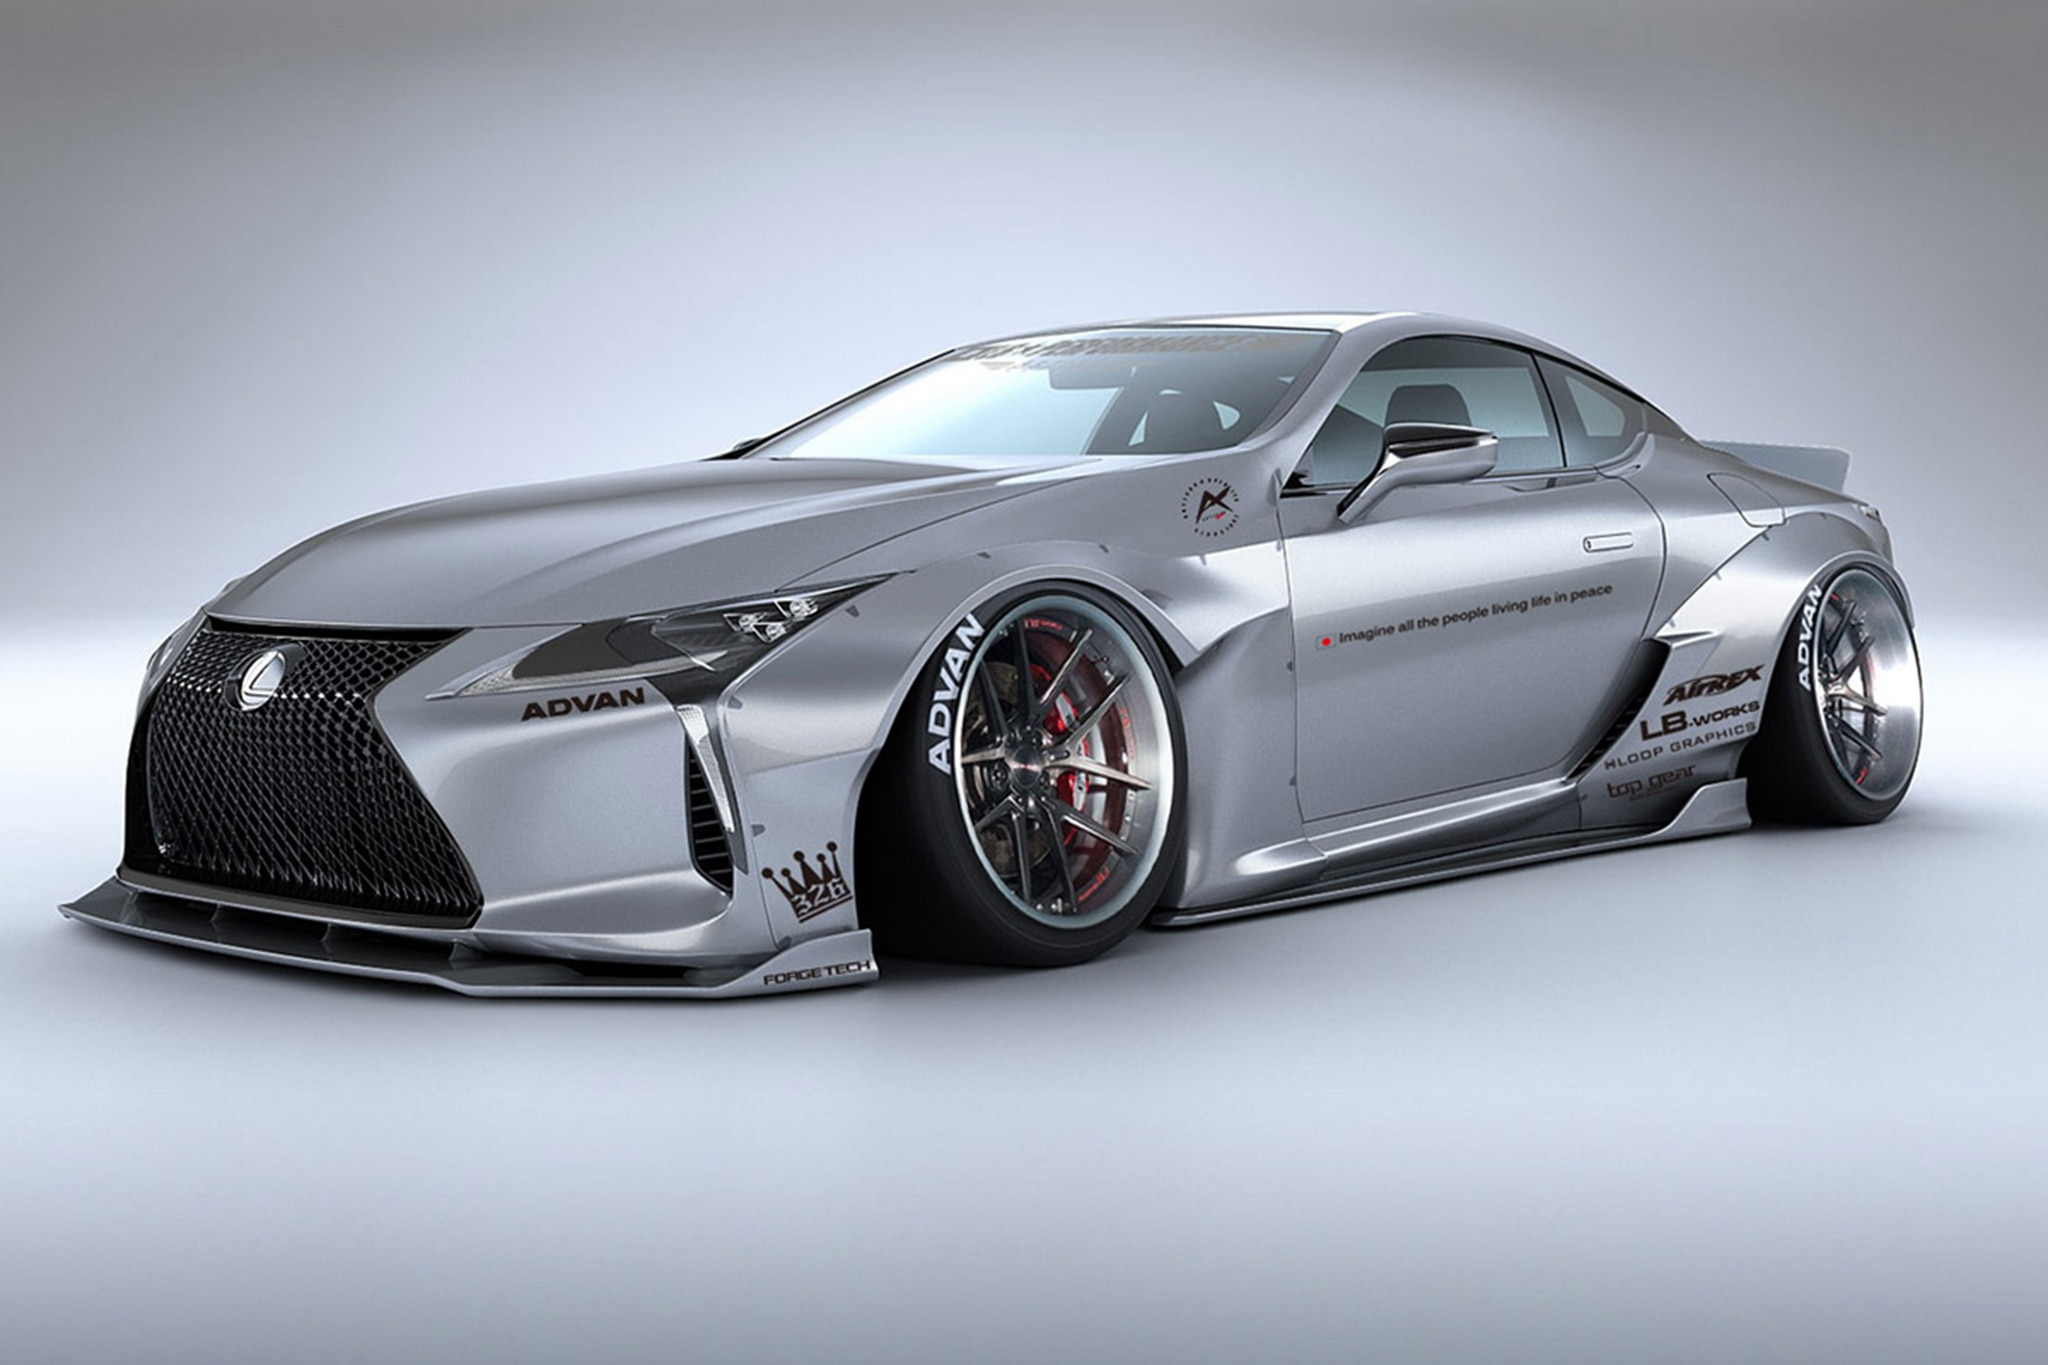 2017 Lexus Lc 500 >> Liberty Walk Lexus LC 500 Looks Ludicrous | Automobile Magazine